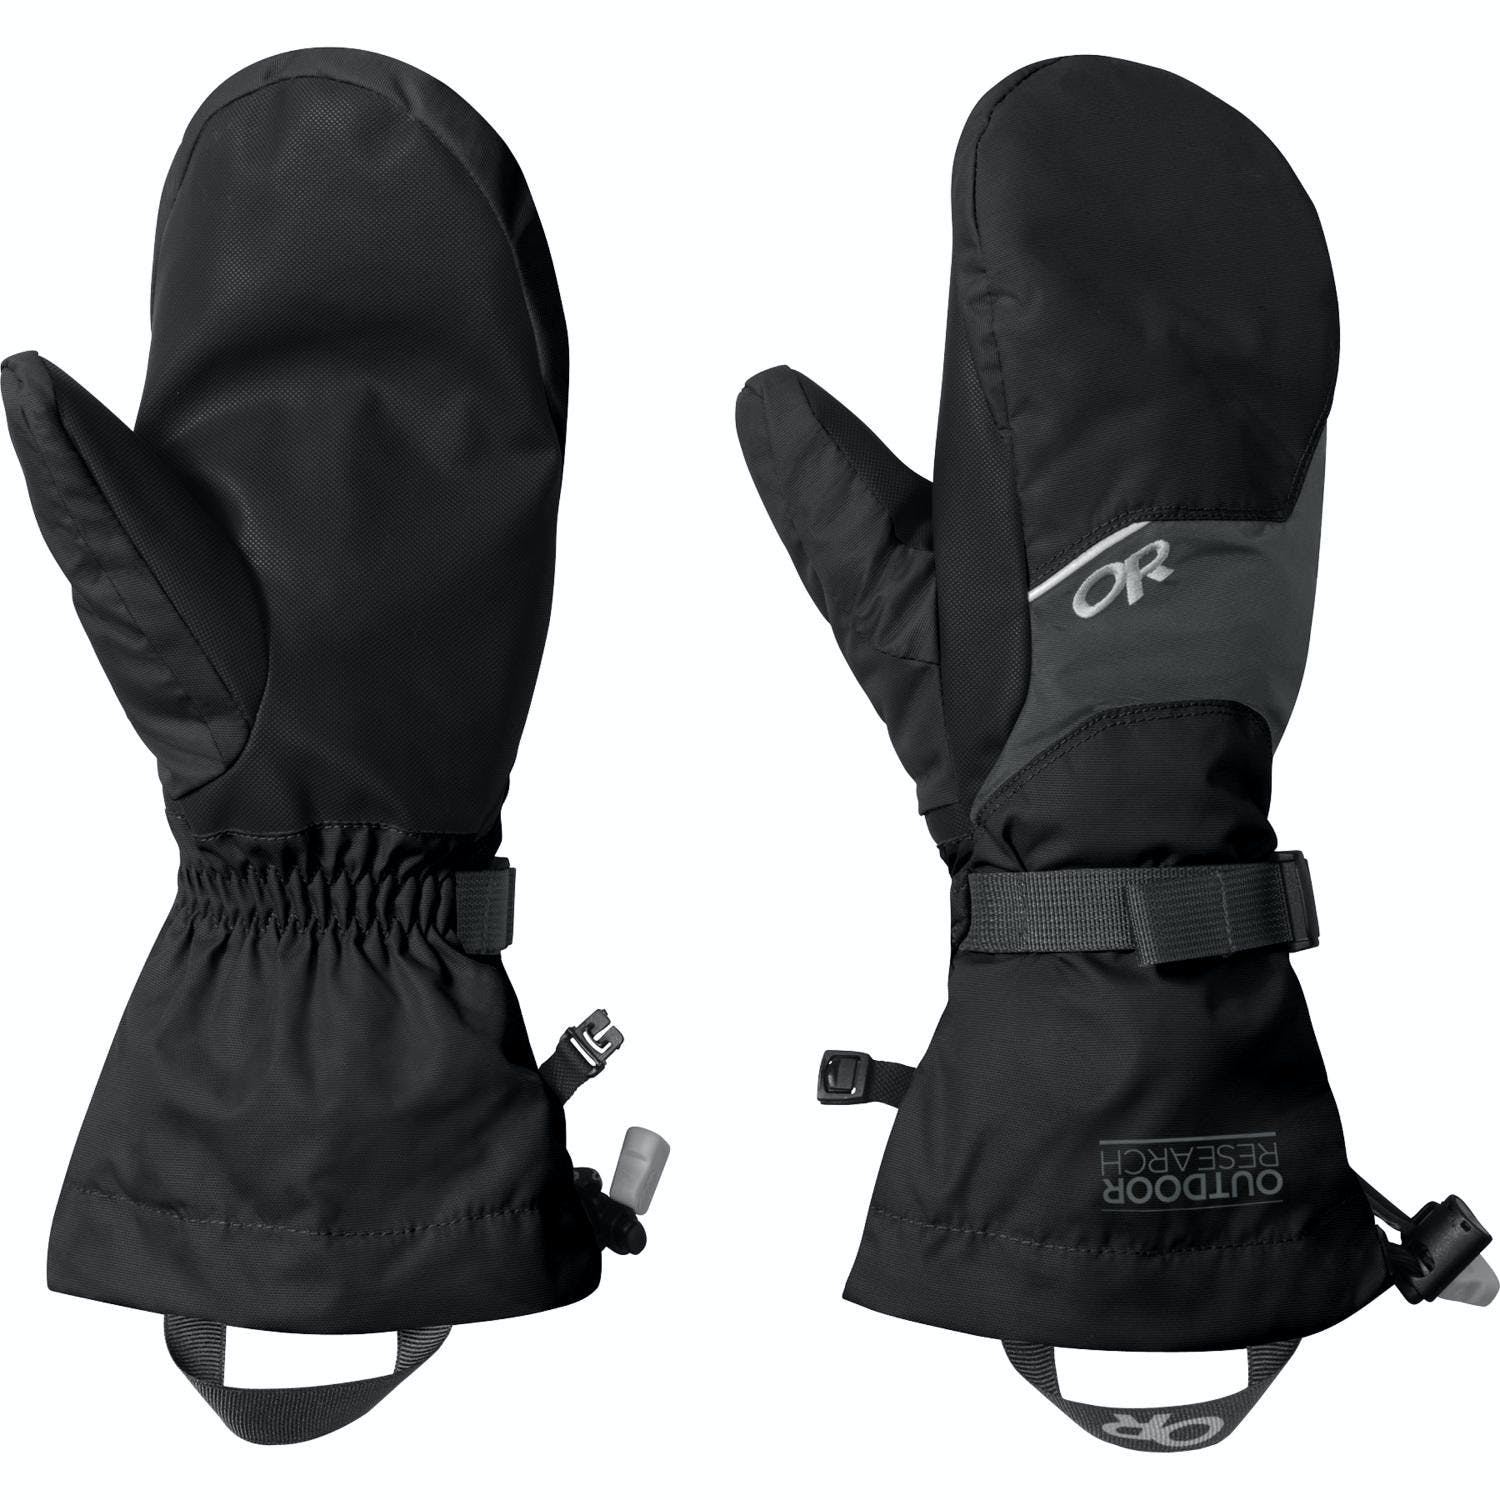 Outdoor Research Adrenaline Mitts Mens Large Black